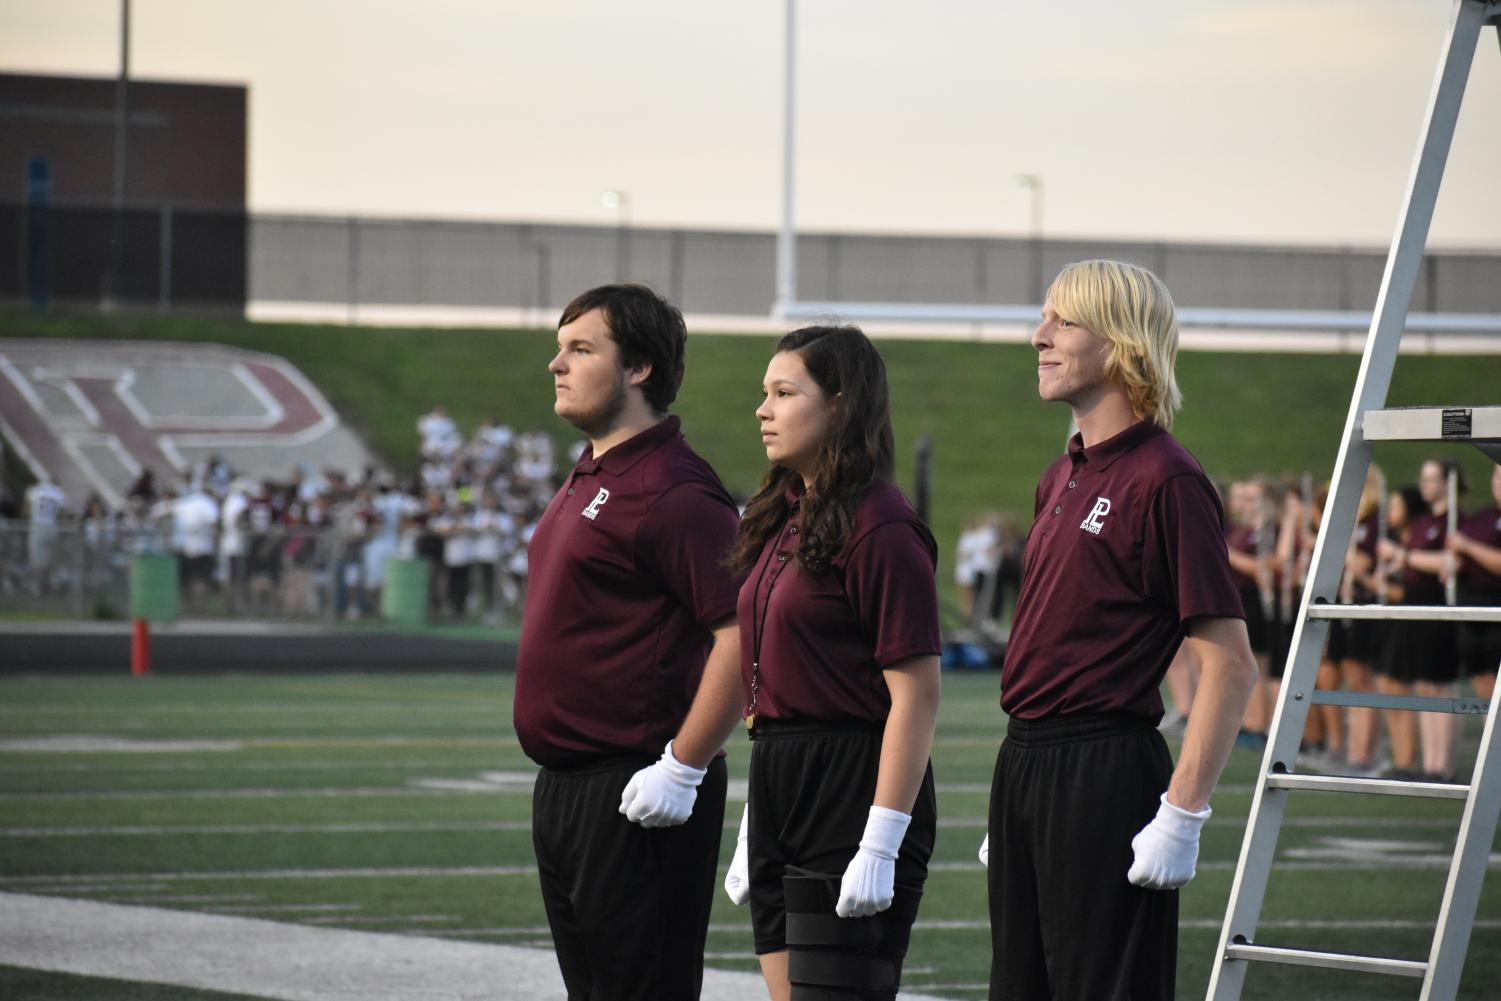 The marching band's three drum majors stand proud before their first full performance. They had a successful halftime, with their entire show on the field.